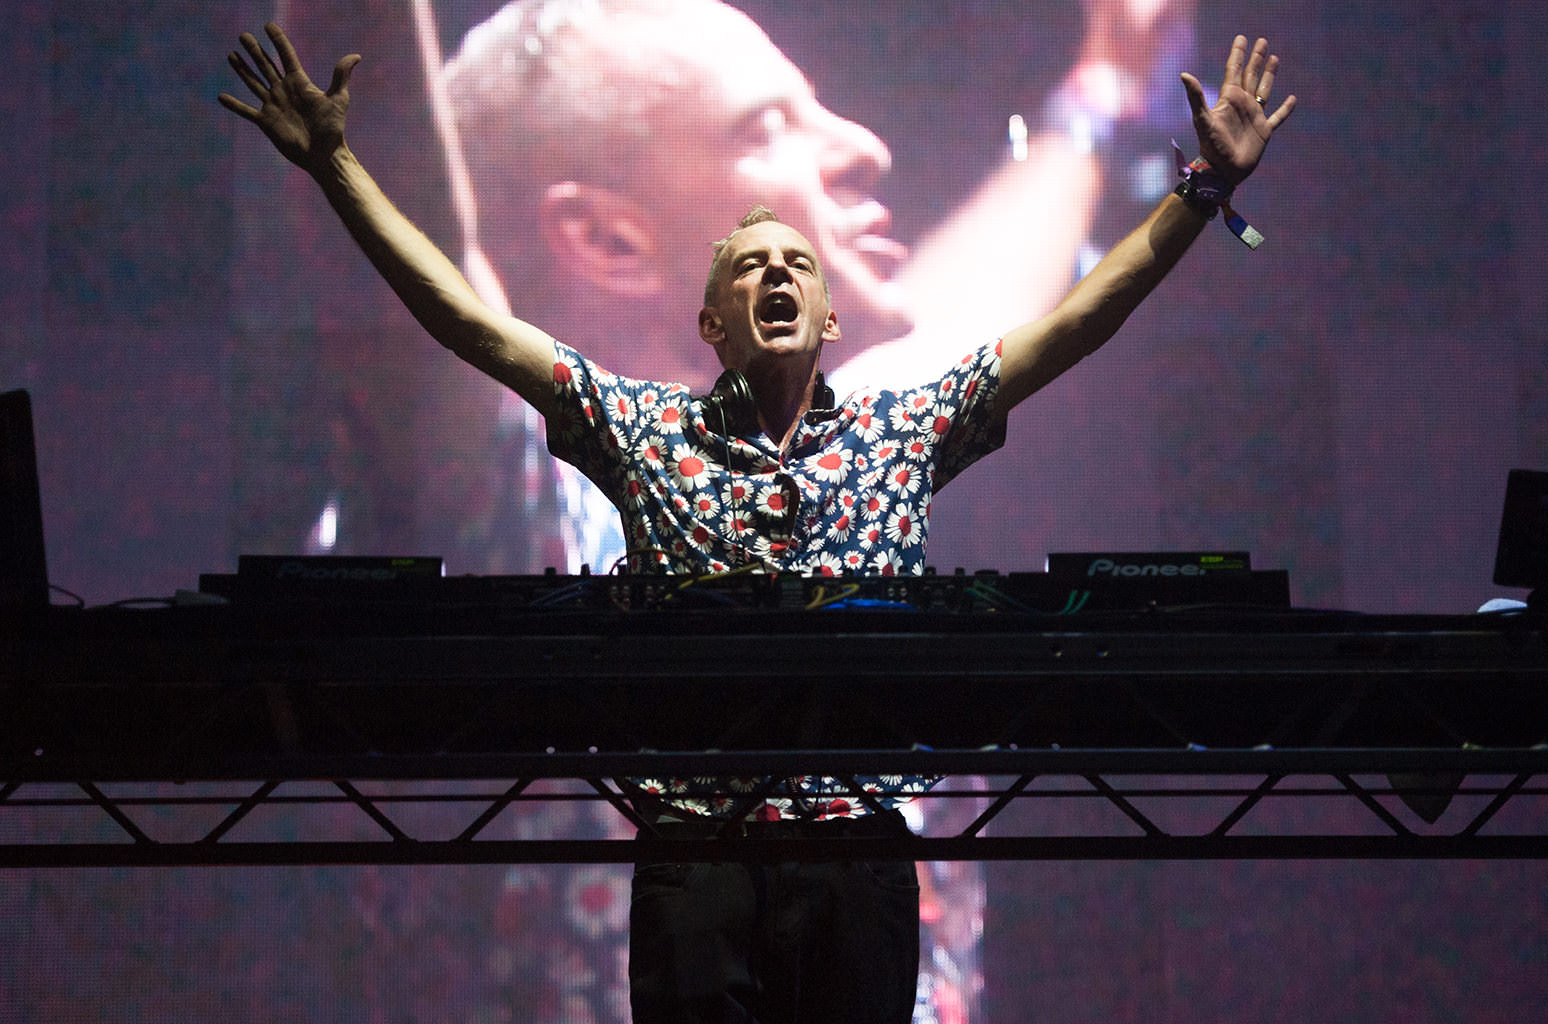 Fatboy Slim Tour